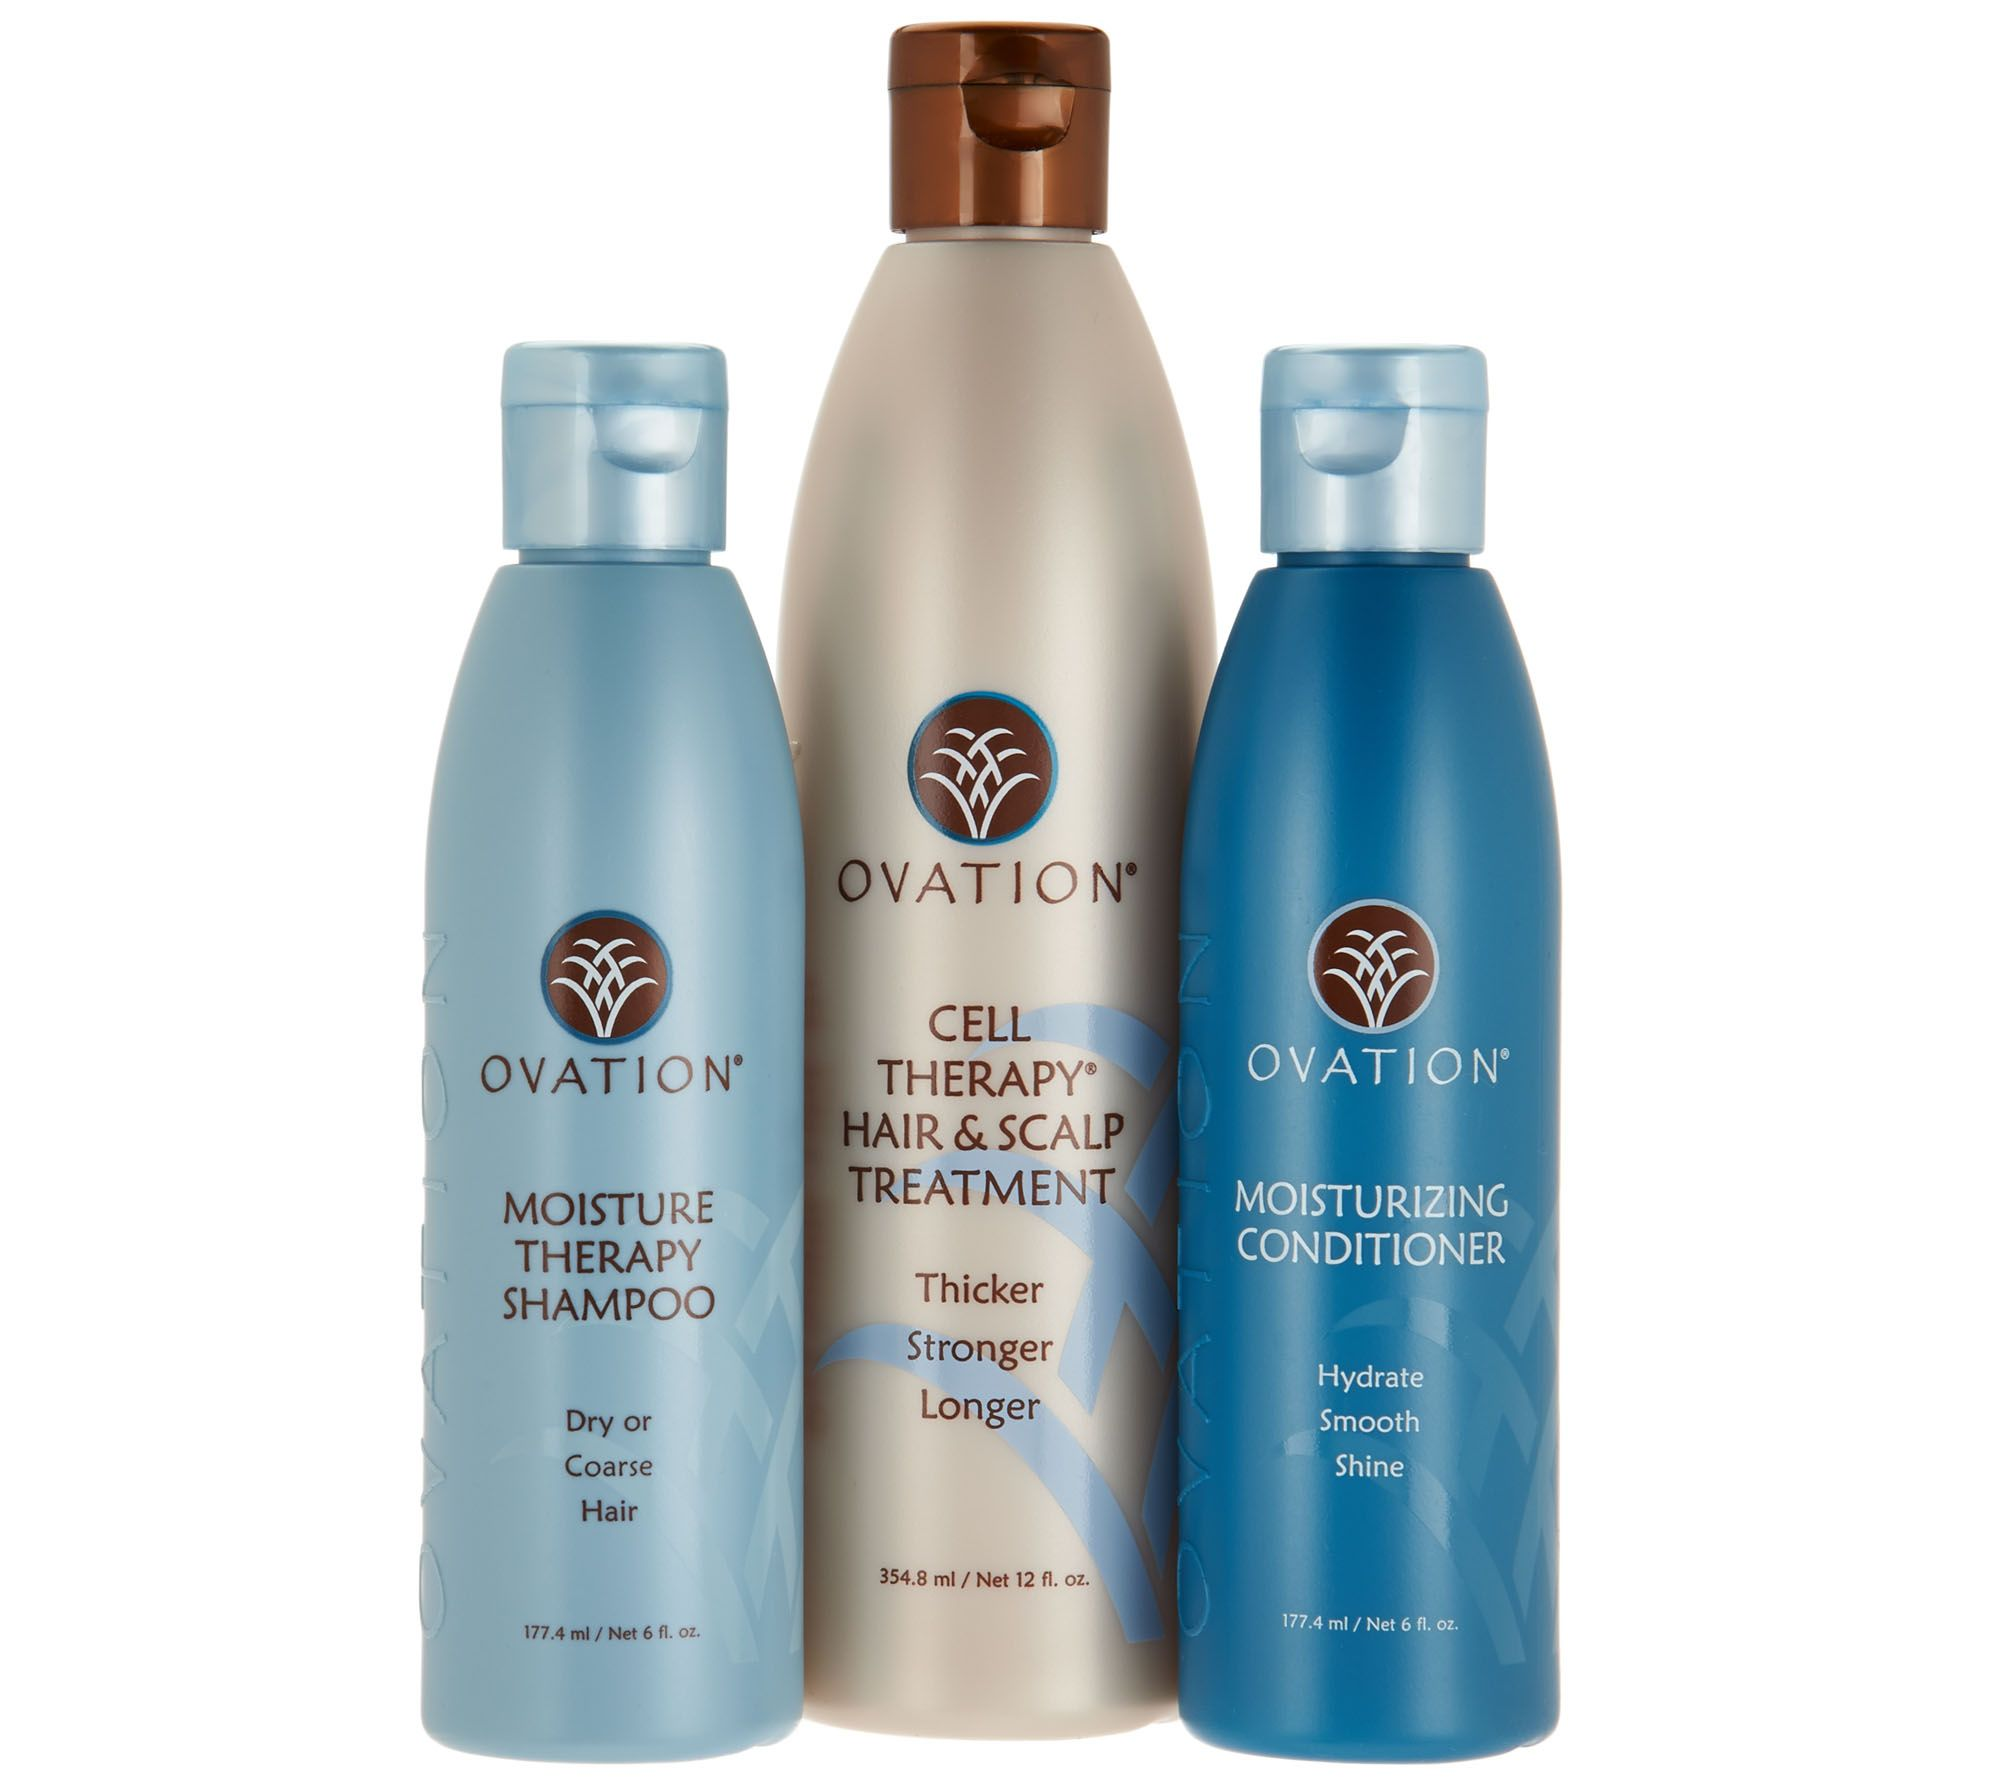 Ovation Cell Therapy 12 Oz With Shampoo Conditioner 6oz Page 1 Qvc